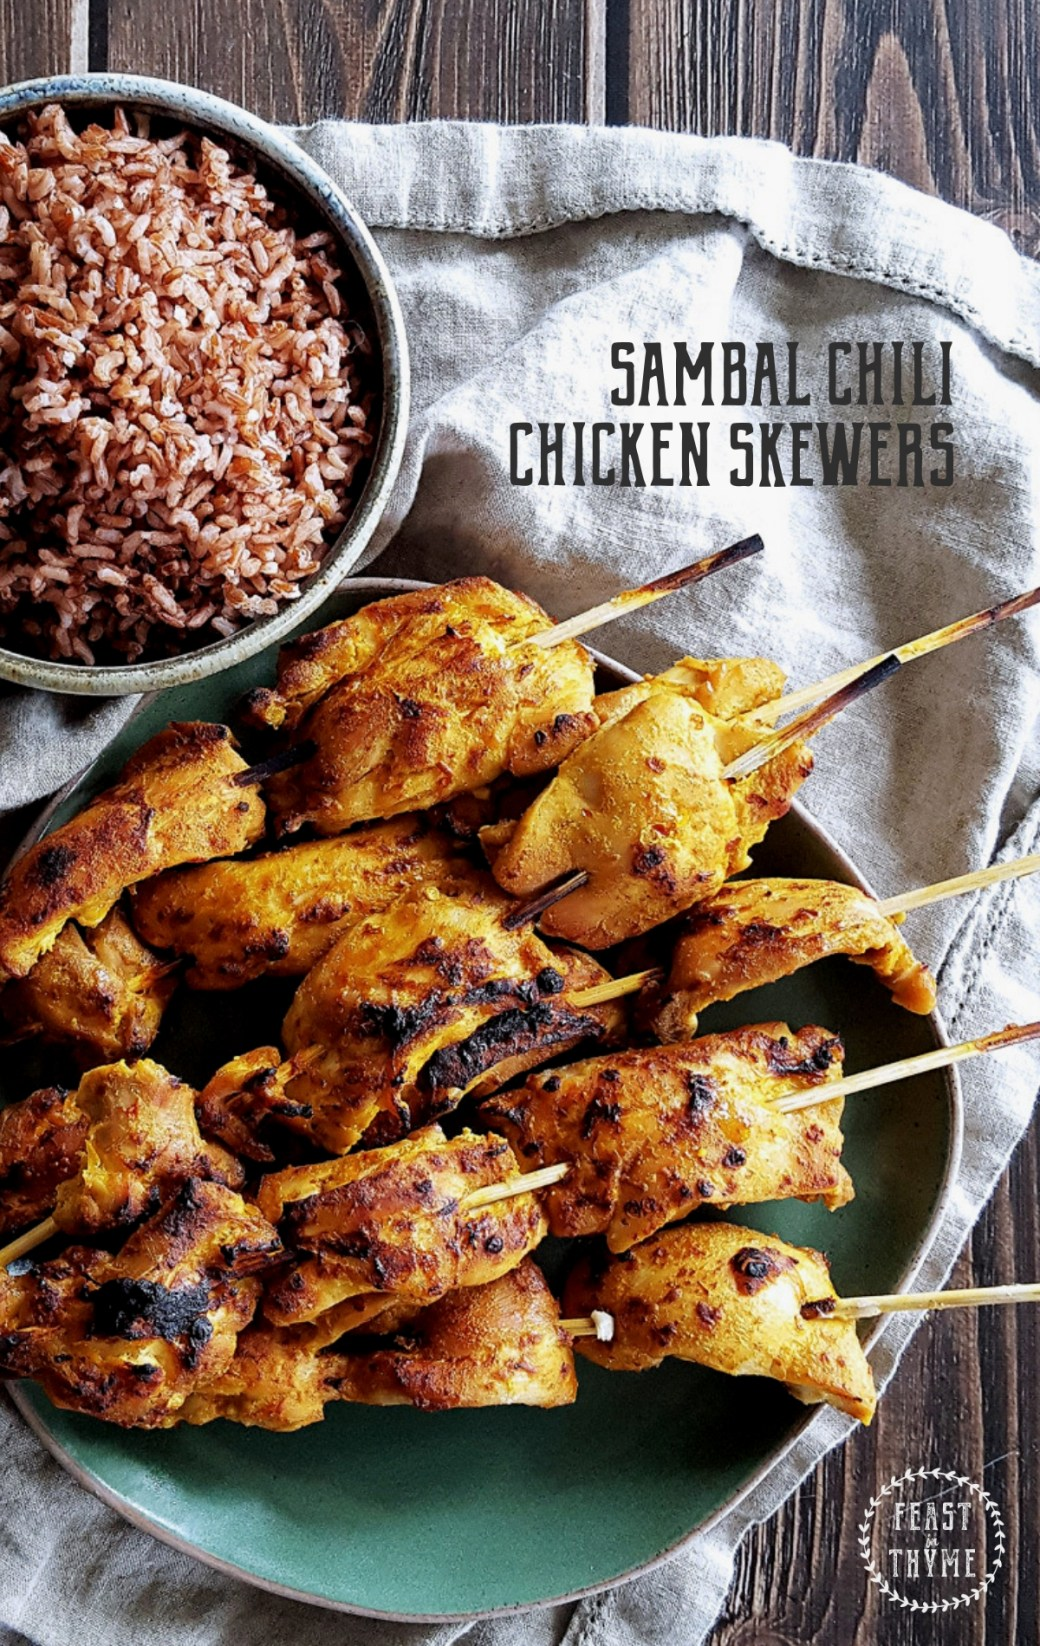 Enjoy a sweet and spicy oven-roasted dinner with these quick and easy marinated Sambal Chili Chicken Skewers. #spicy #weeknightdinner #chickendinner | FeastInThyme.com